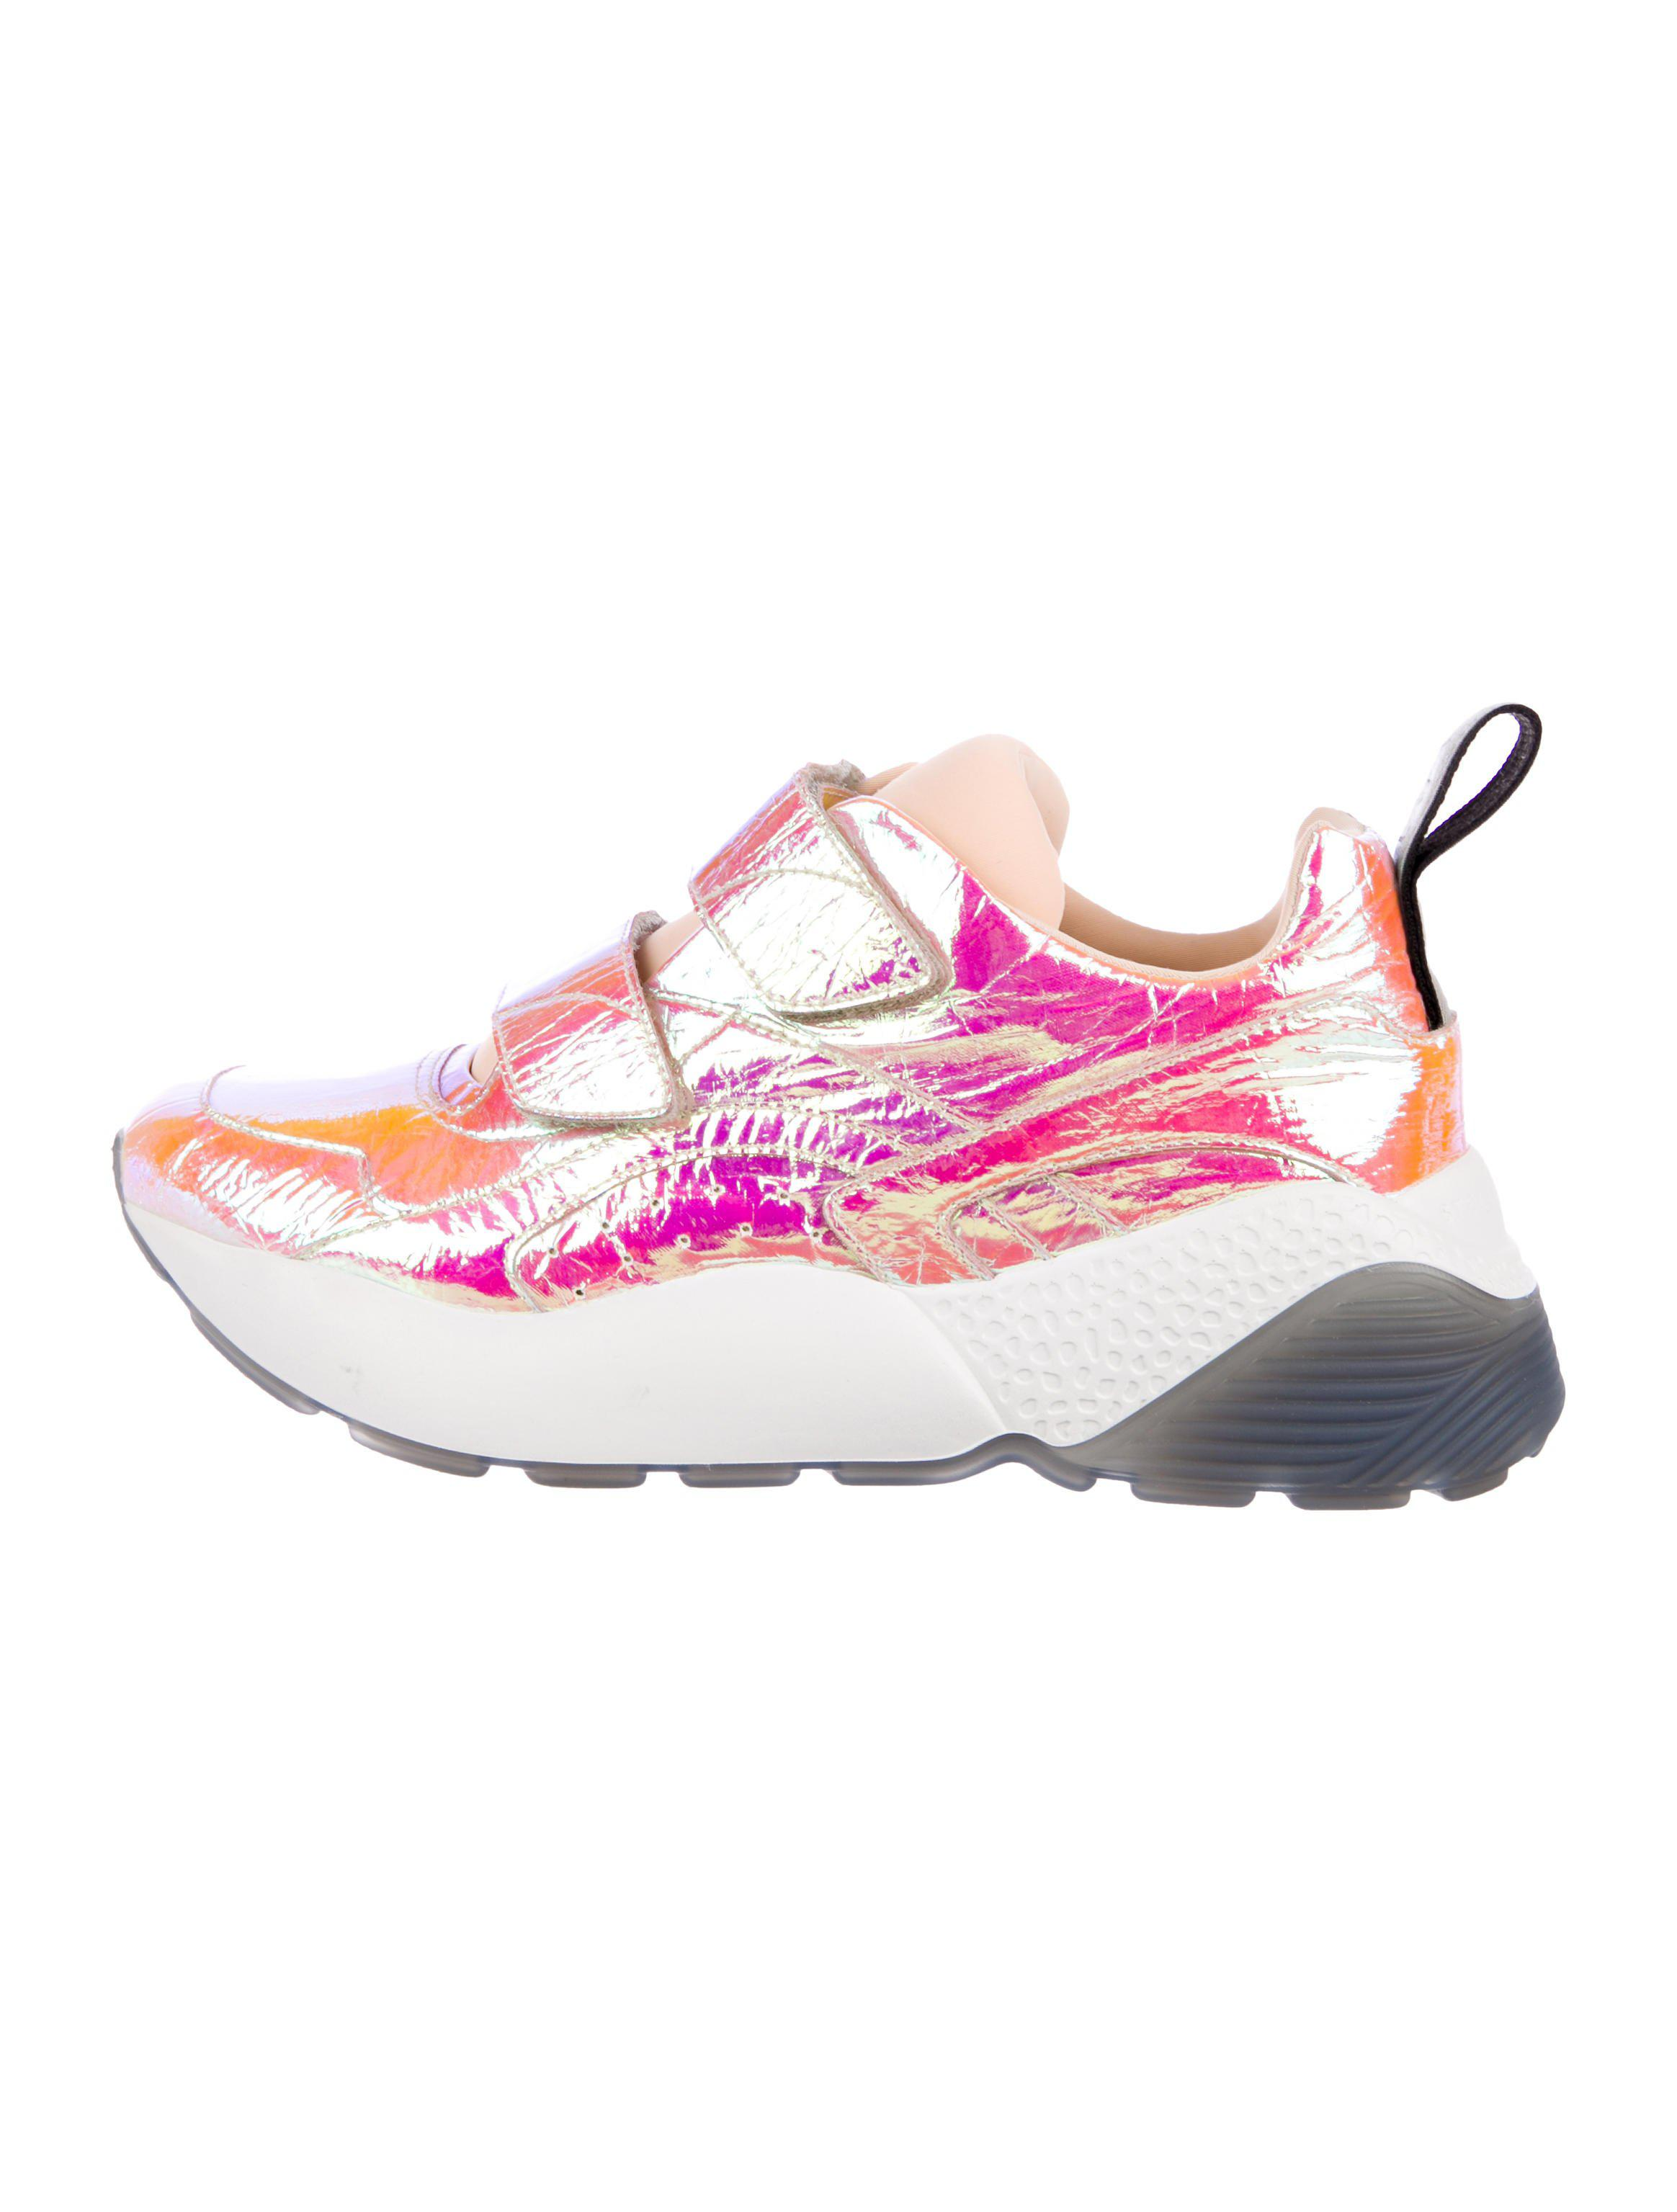 discounts sale online free shipping big sale Stella McCartney Iridescent Low-Top Sneakers discount cheap price cheap sale lowest price jeVQRu2